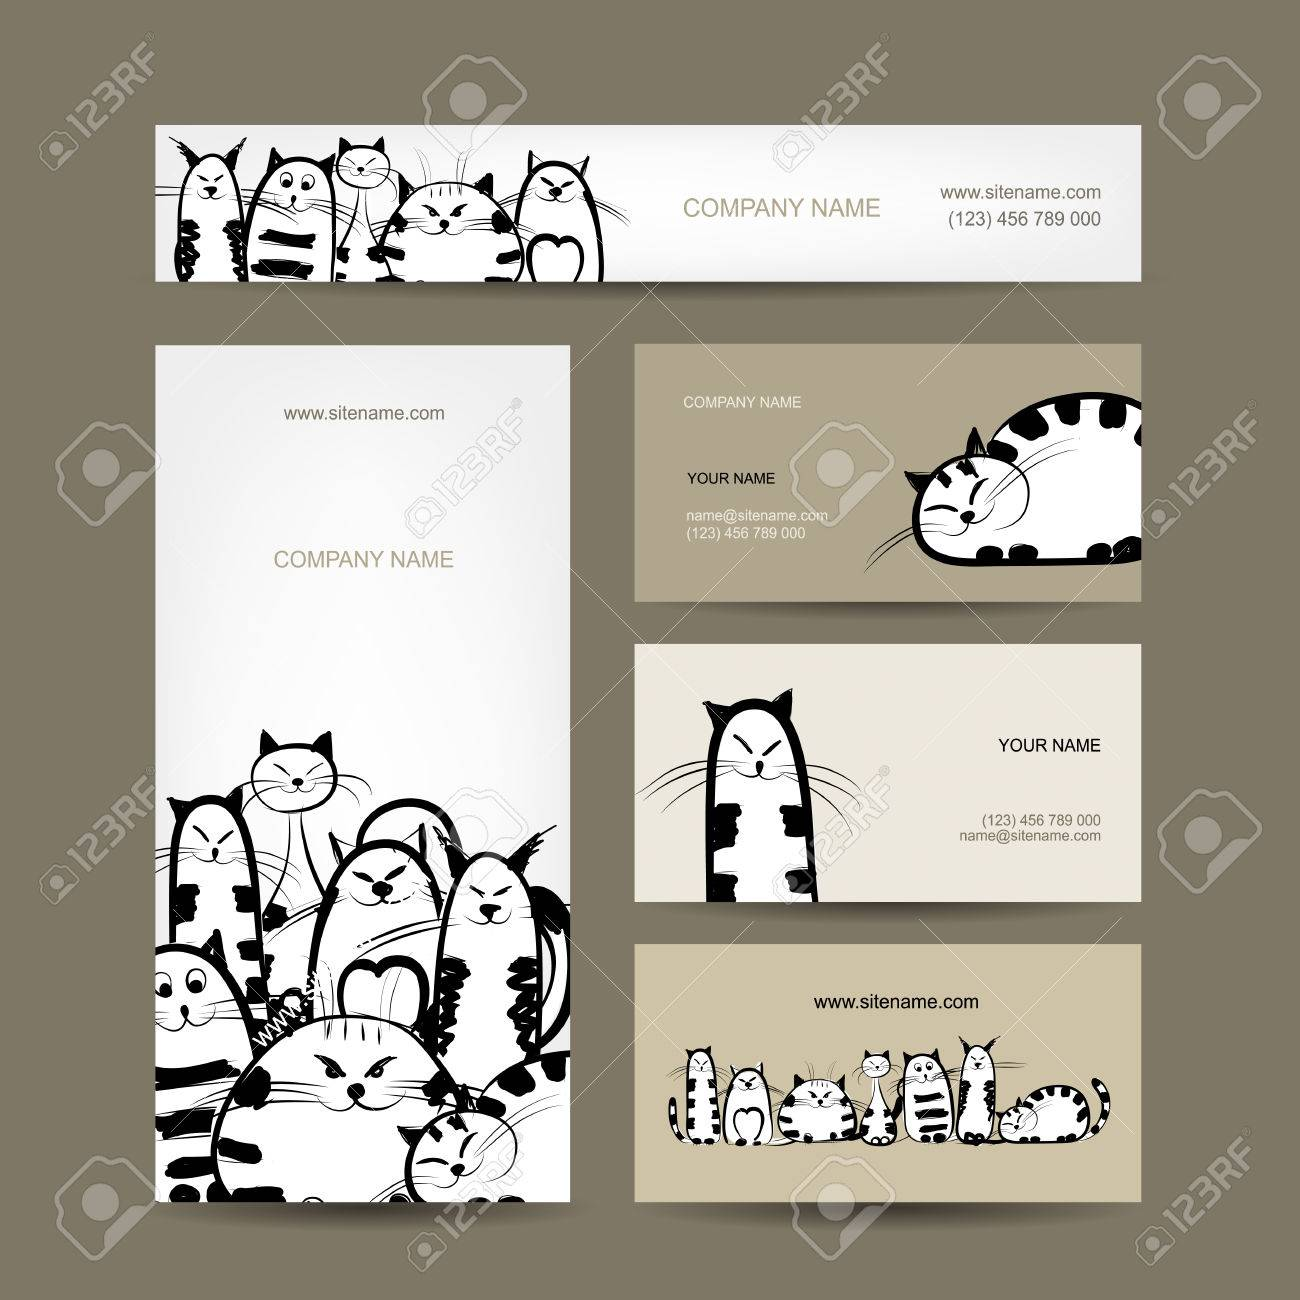 Corporate Business Cards Design With Funny Striped Cats Royalty Free ...